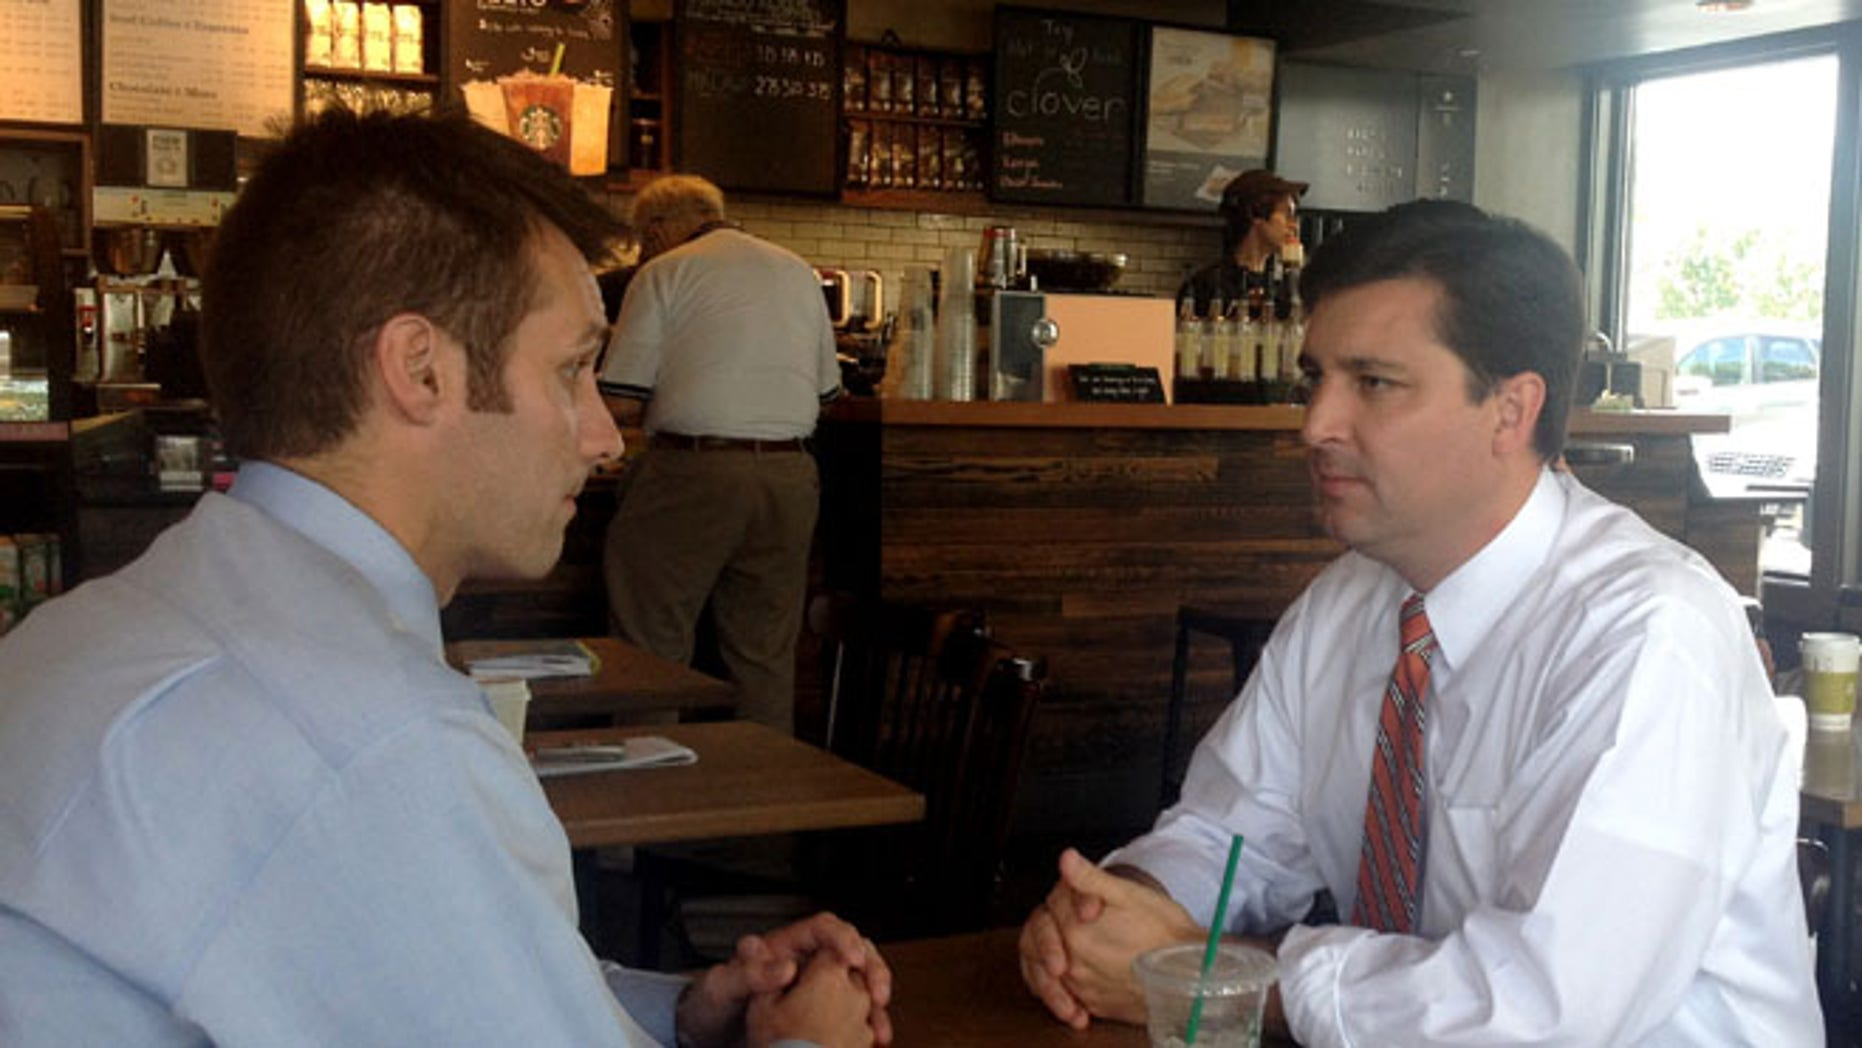 FILE: June 30, 2014: North Carolina Republican House candidate David Rouzer, right, talking with a campaign aide, in Raleigh, N.C.